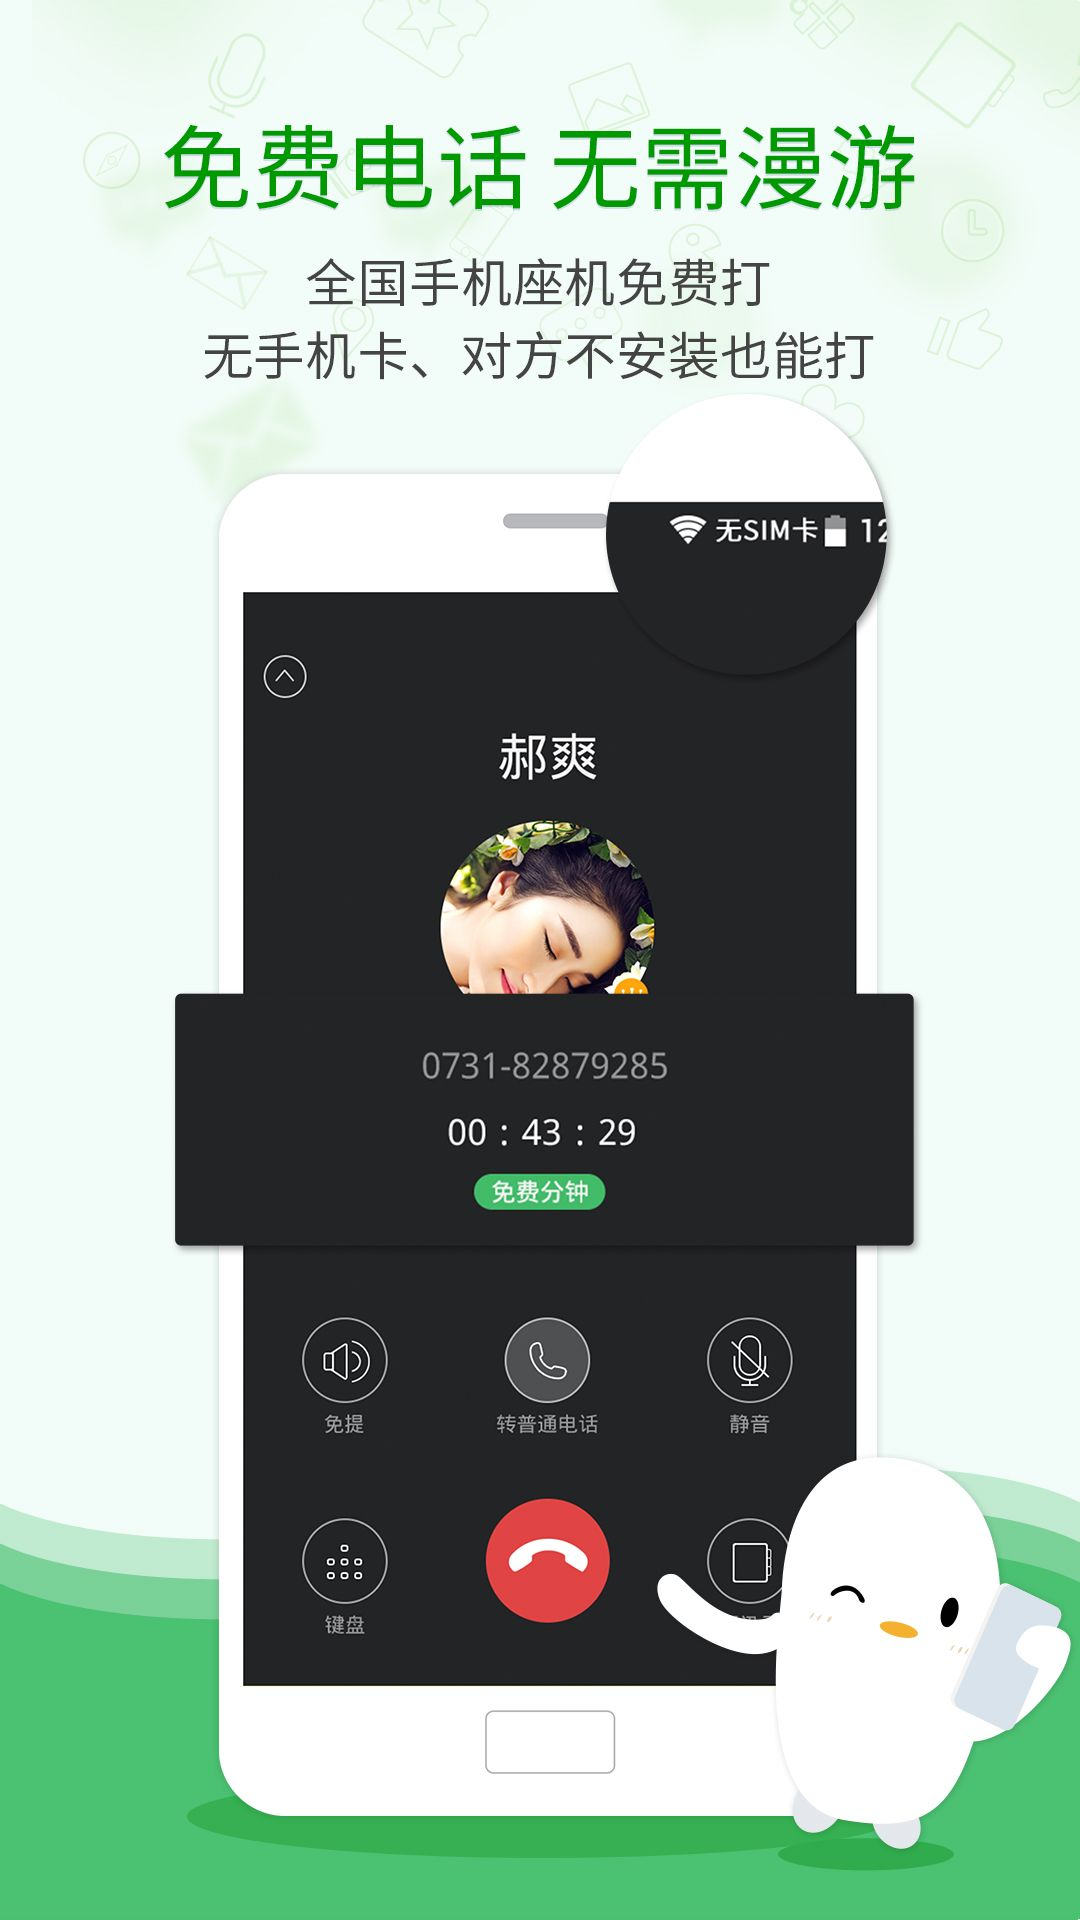 易信- Google Play Android 應用程式